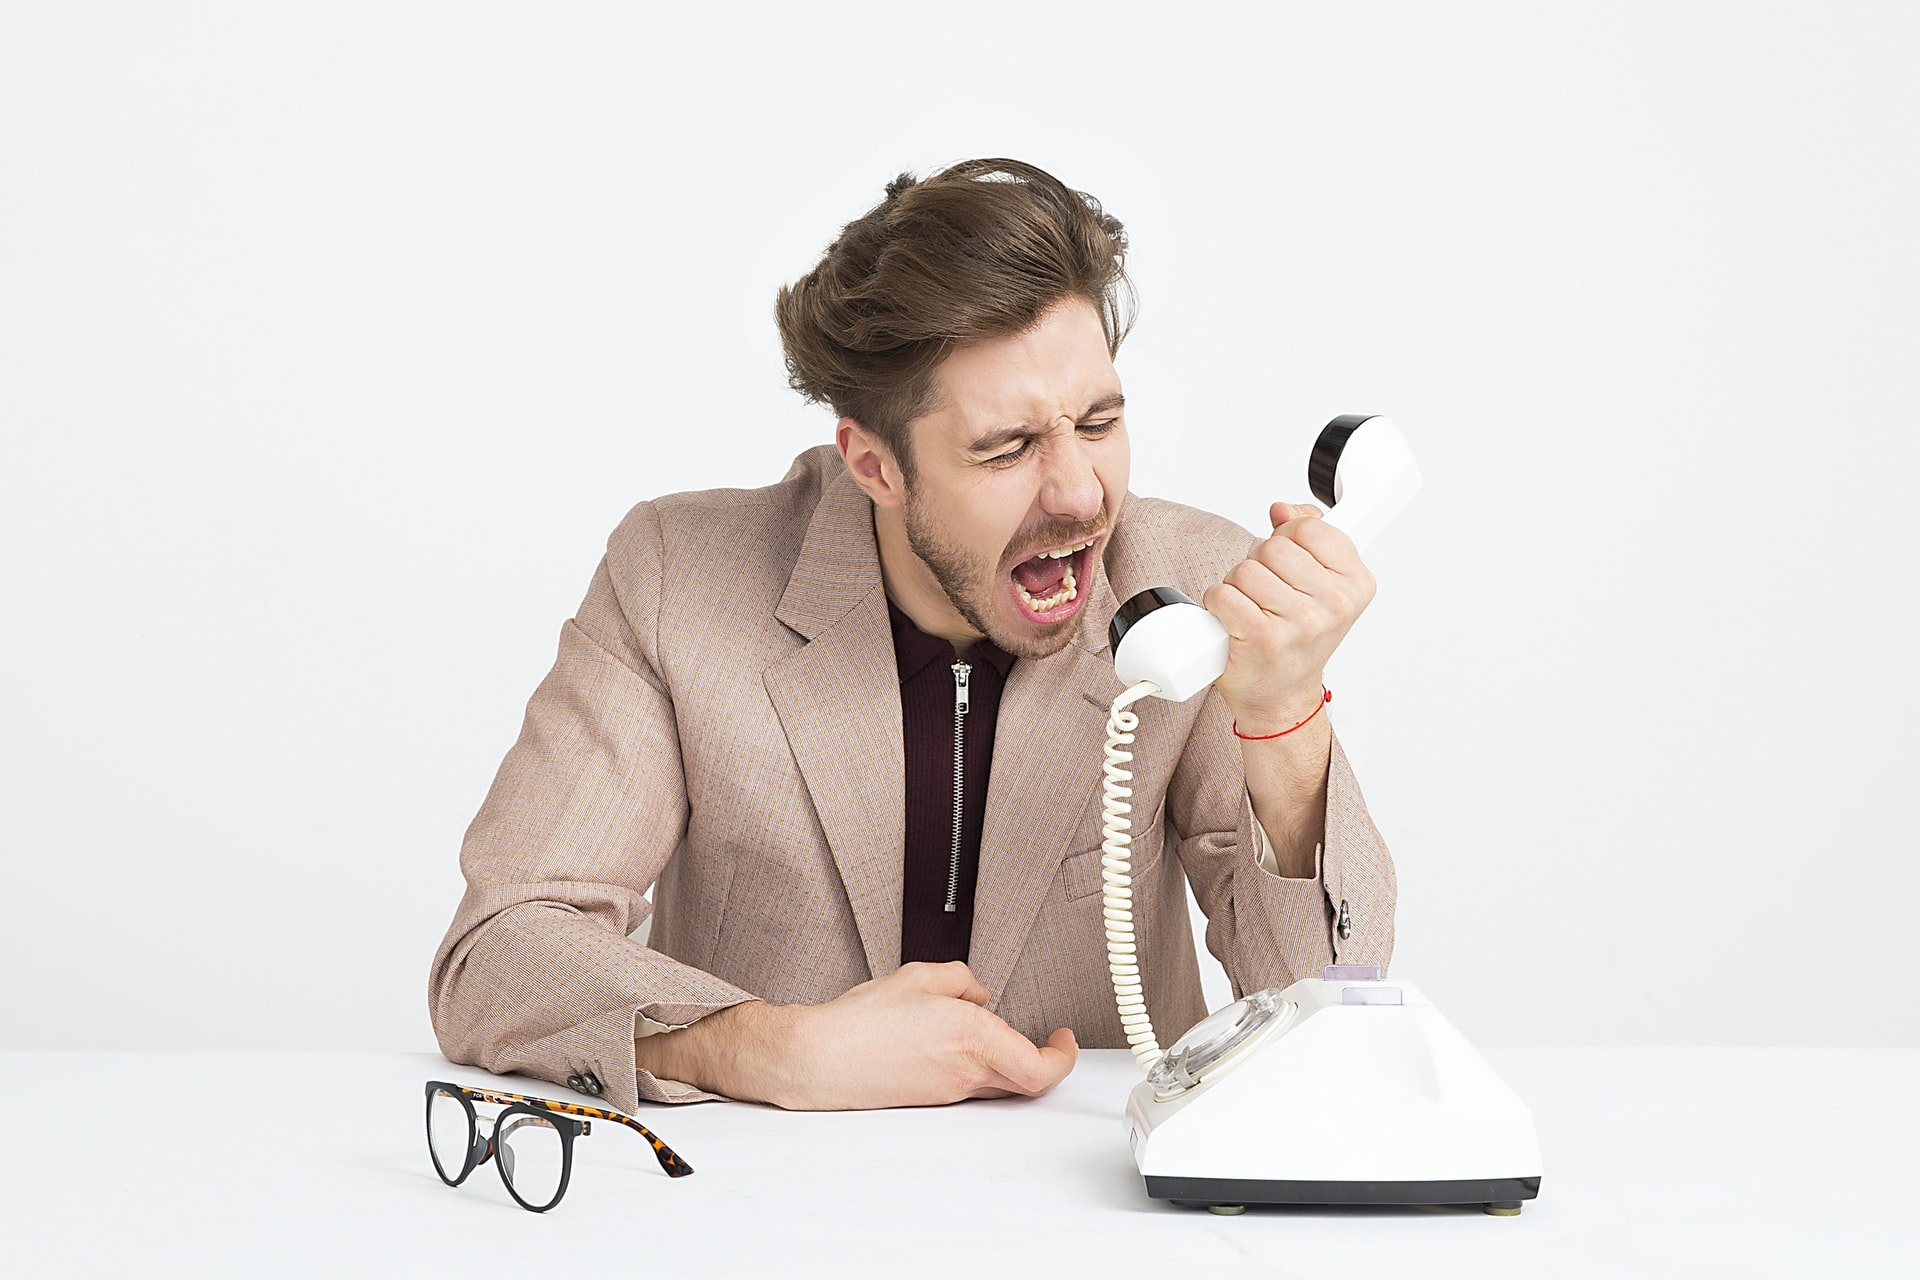 man in tan suit holding a landline phone yelling into it